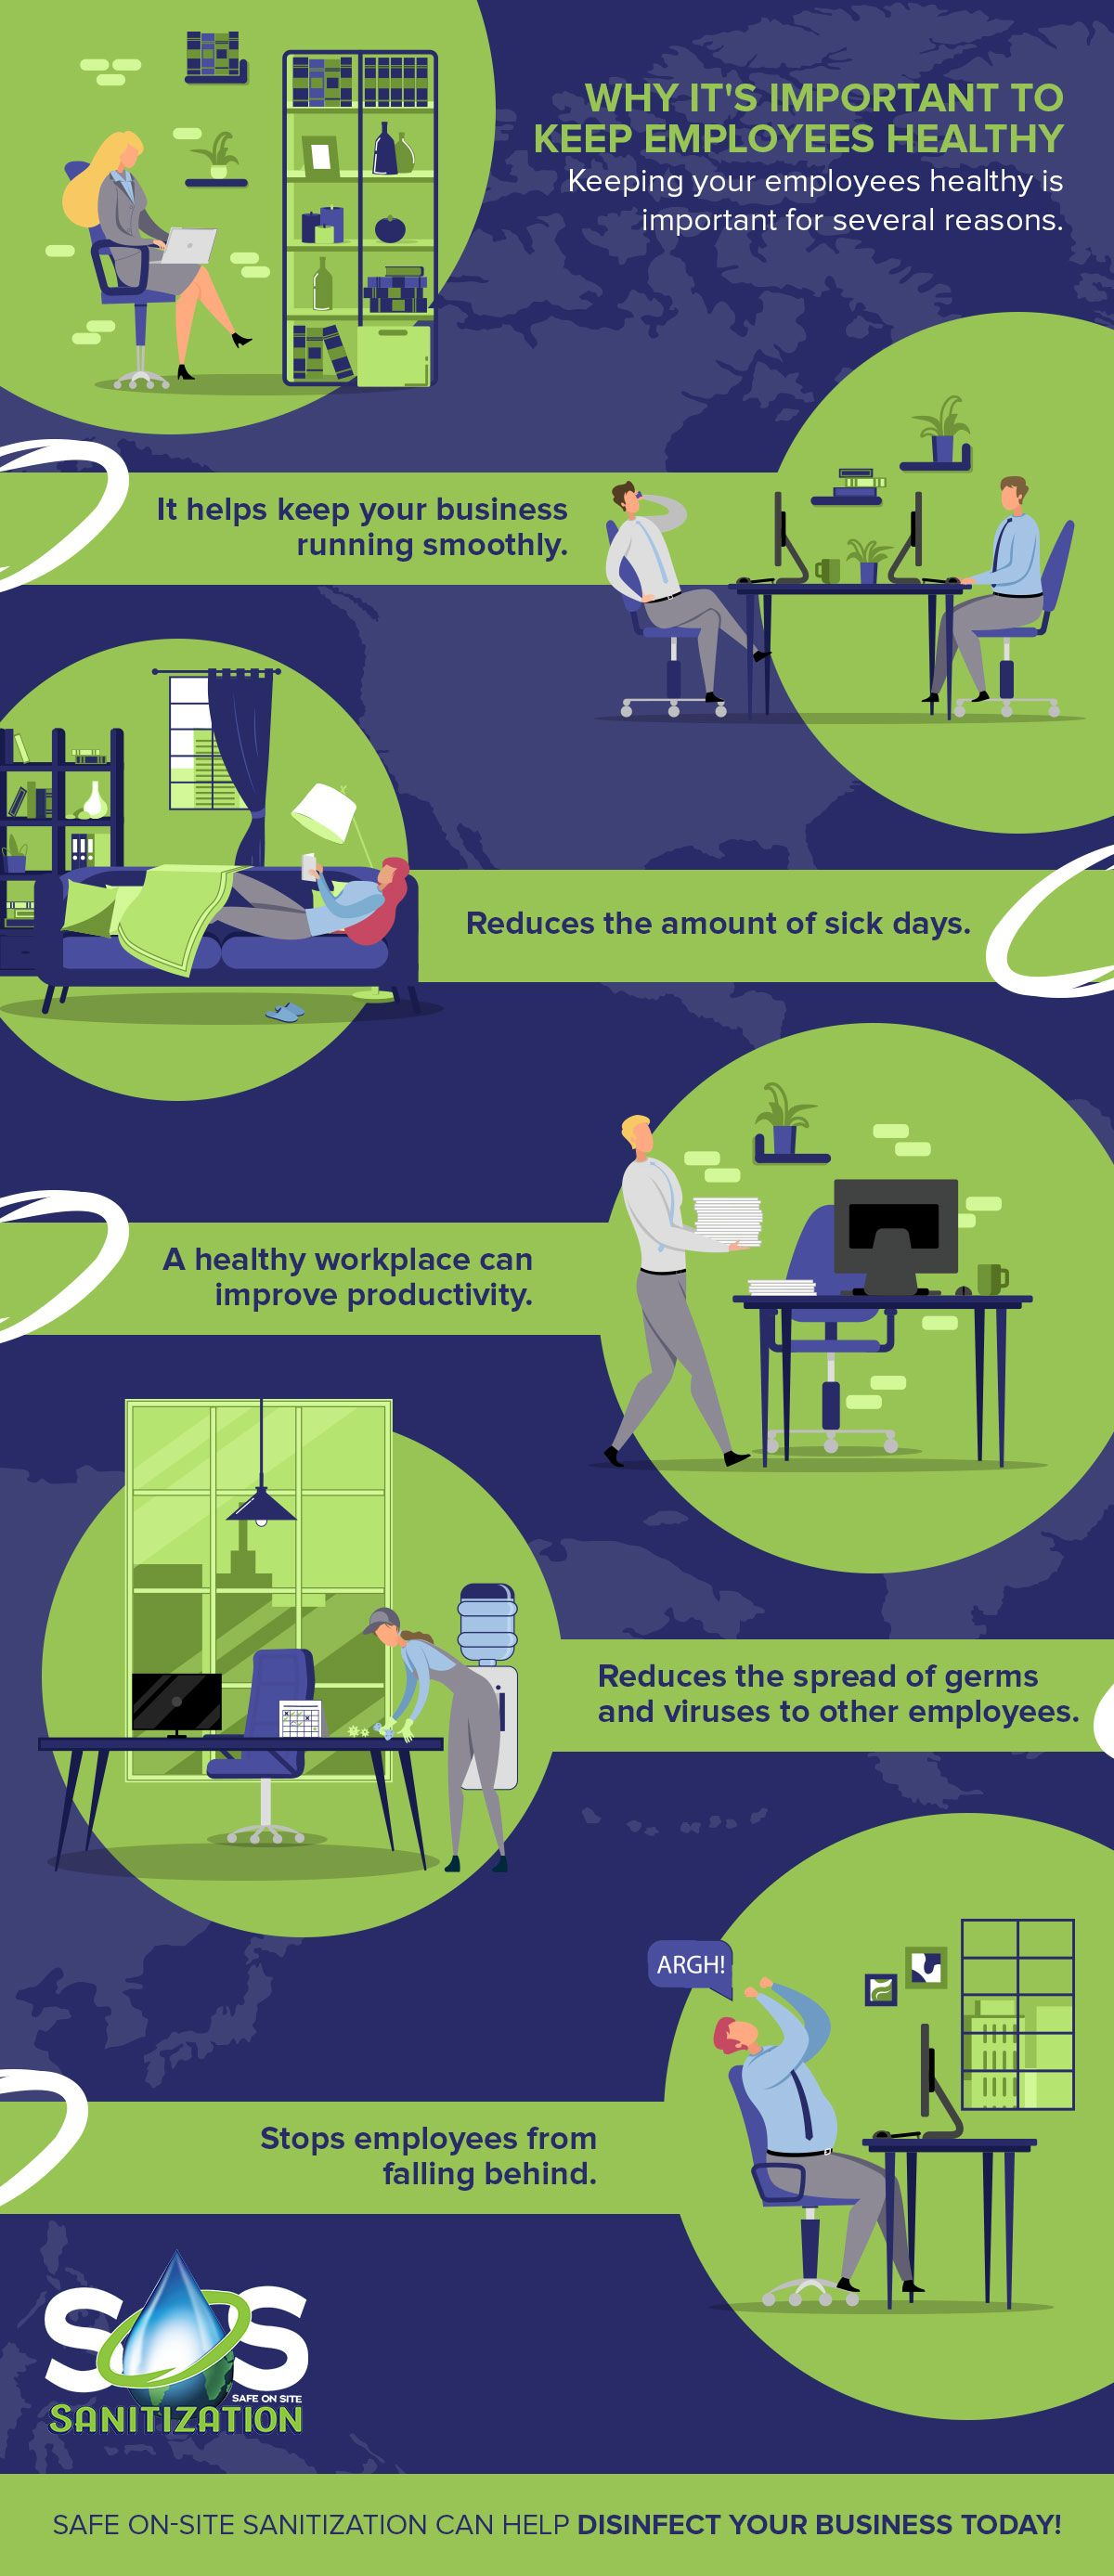 Why-It's-Important-to-Keep-Employees-Healthy-Infographic2.jpg